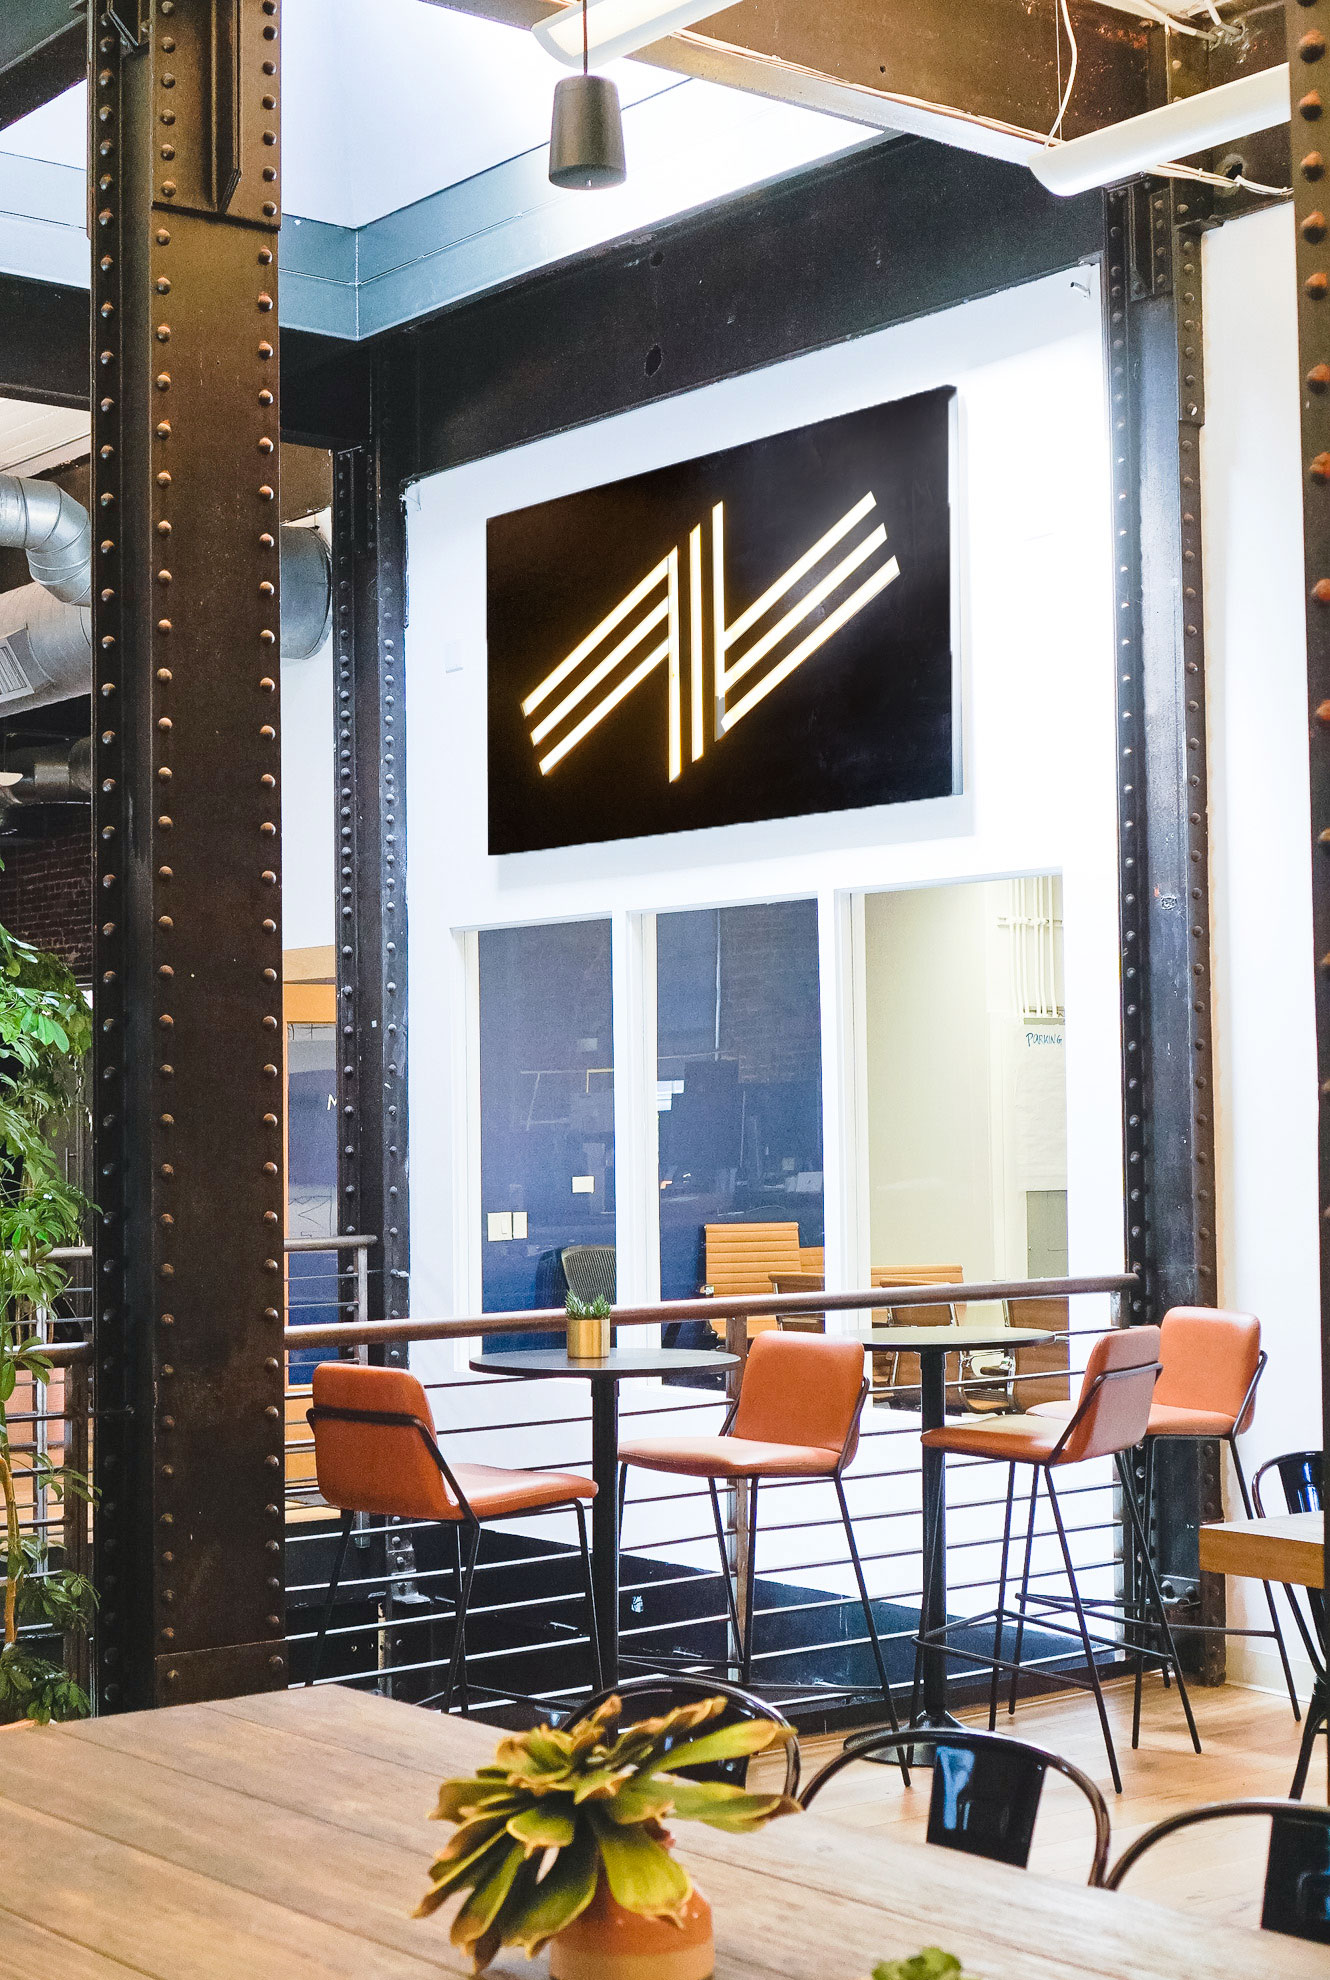 Illuminated black wood sign with warm light on the atrium wall of Zeus, a San Francisco based company providing beautiful, fully furnished homes for business travelers staying one month or longer.